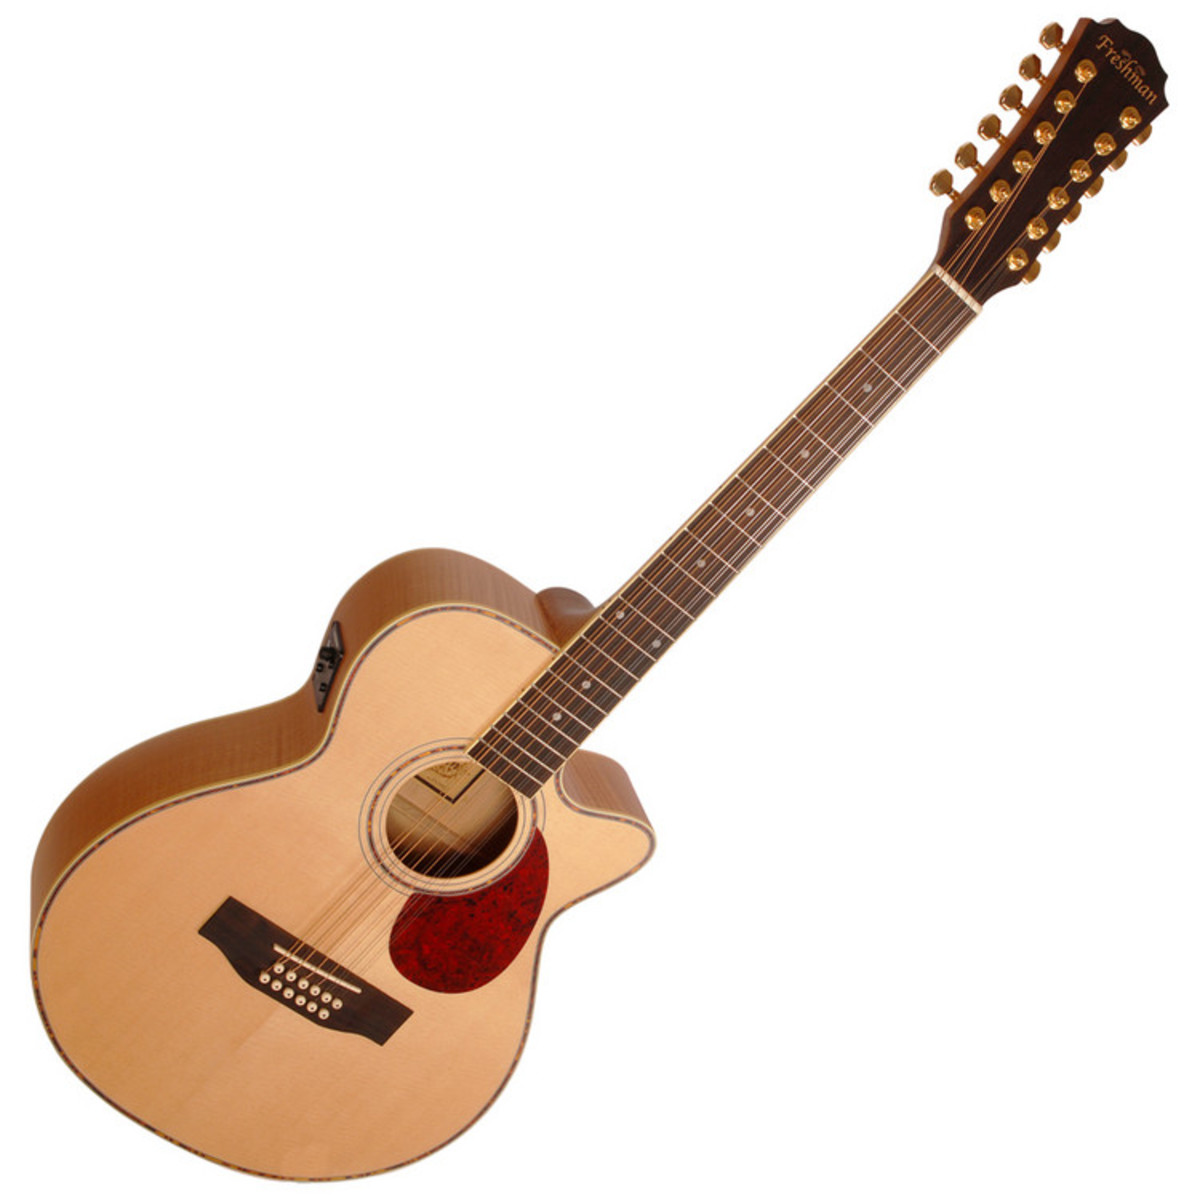 freshman fa1am12 12 string electro acoustic guitar natural b stock at gear4music. Black Bedroom Furniture Sets. Home Design Ideas